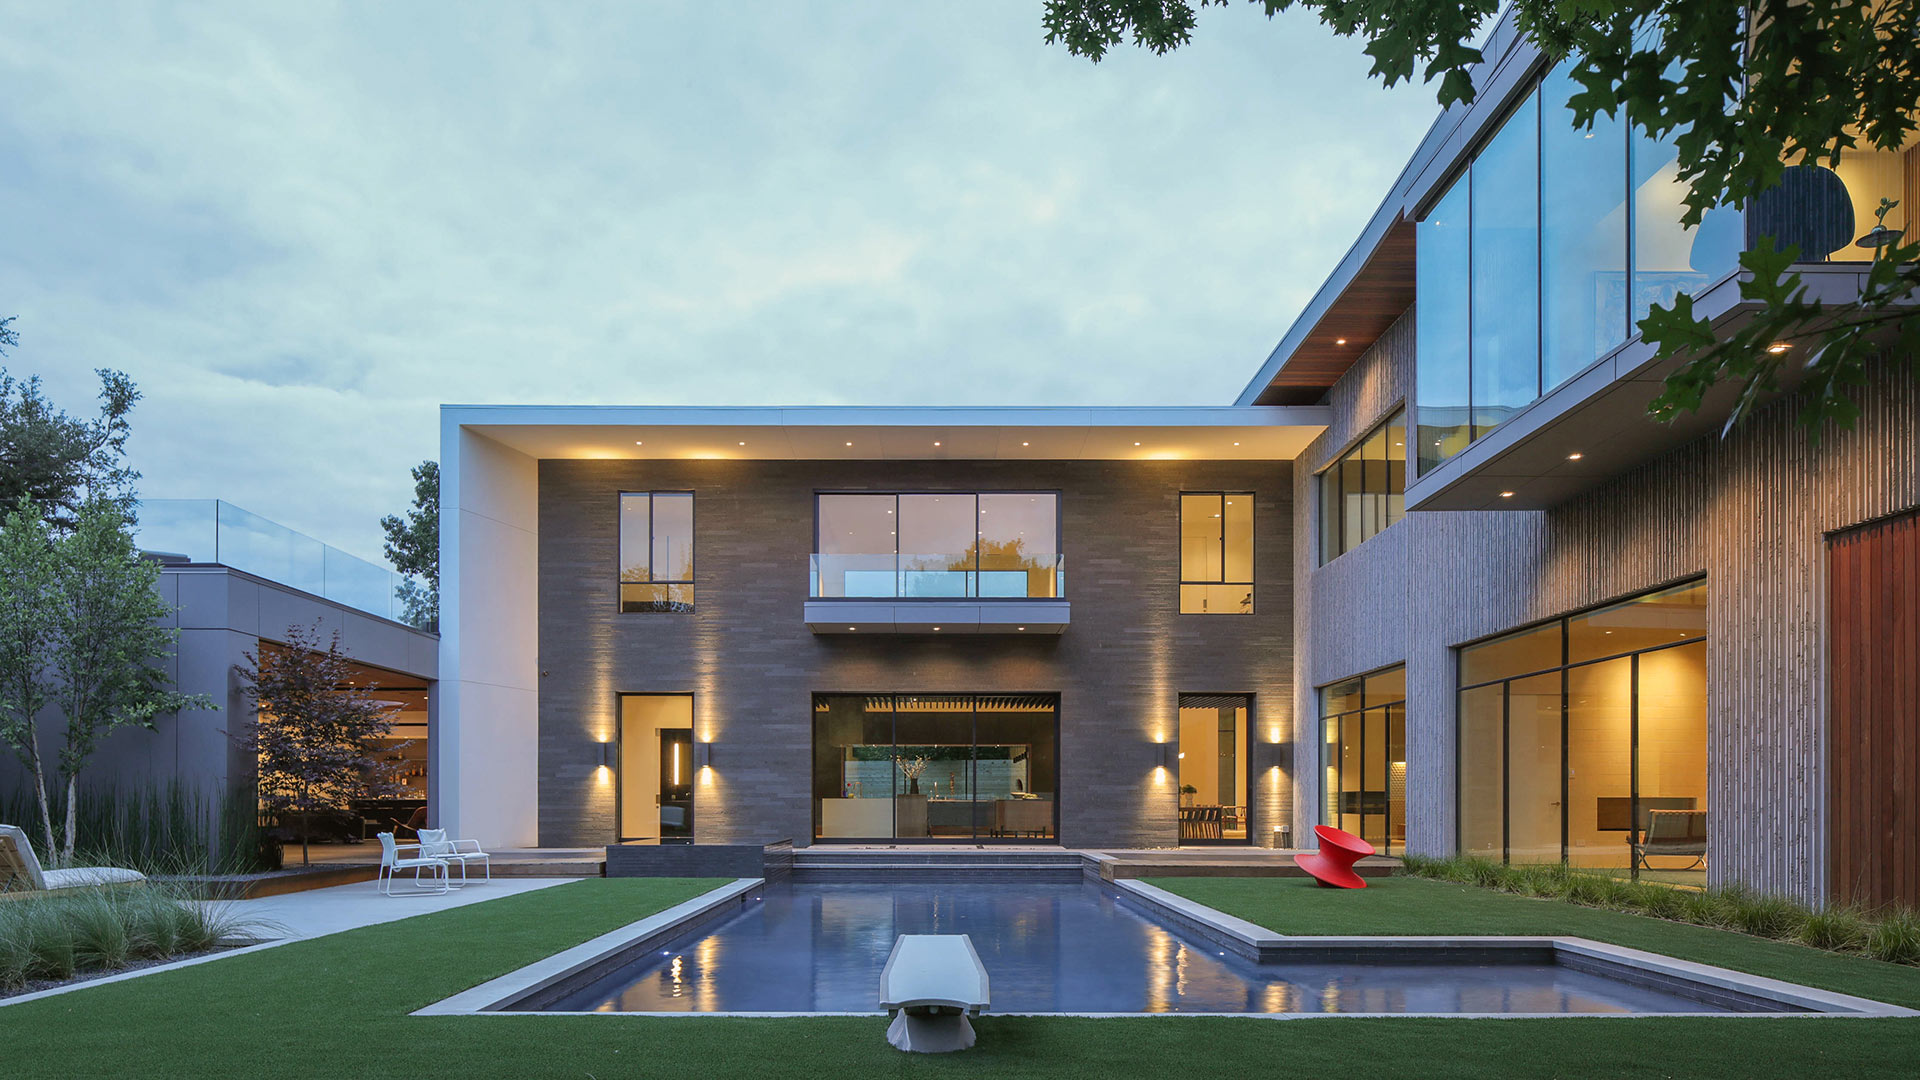 Beautiful house with glass windows and pool